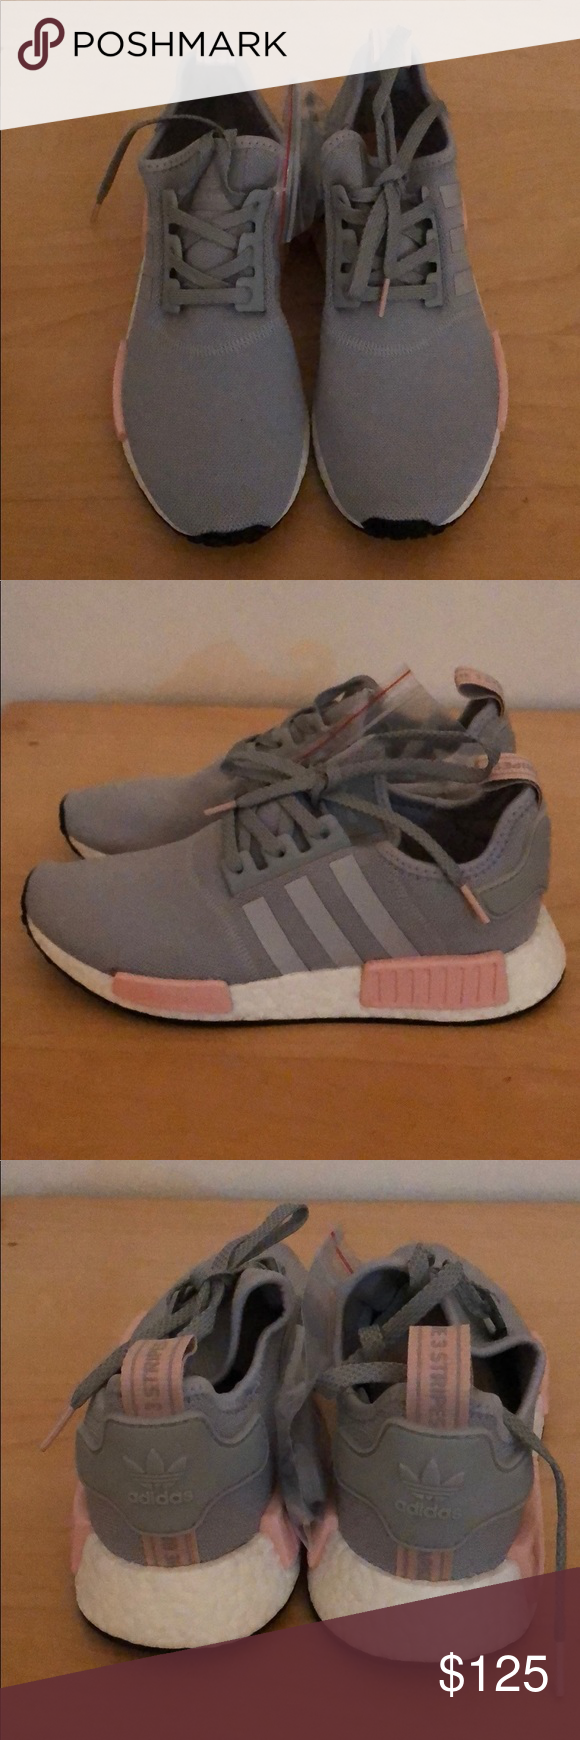 nmd r1 womens grey and pink